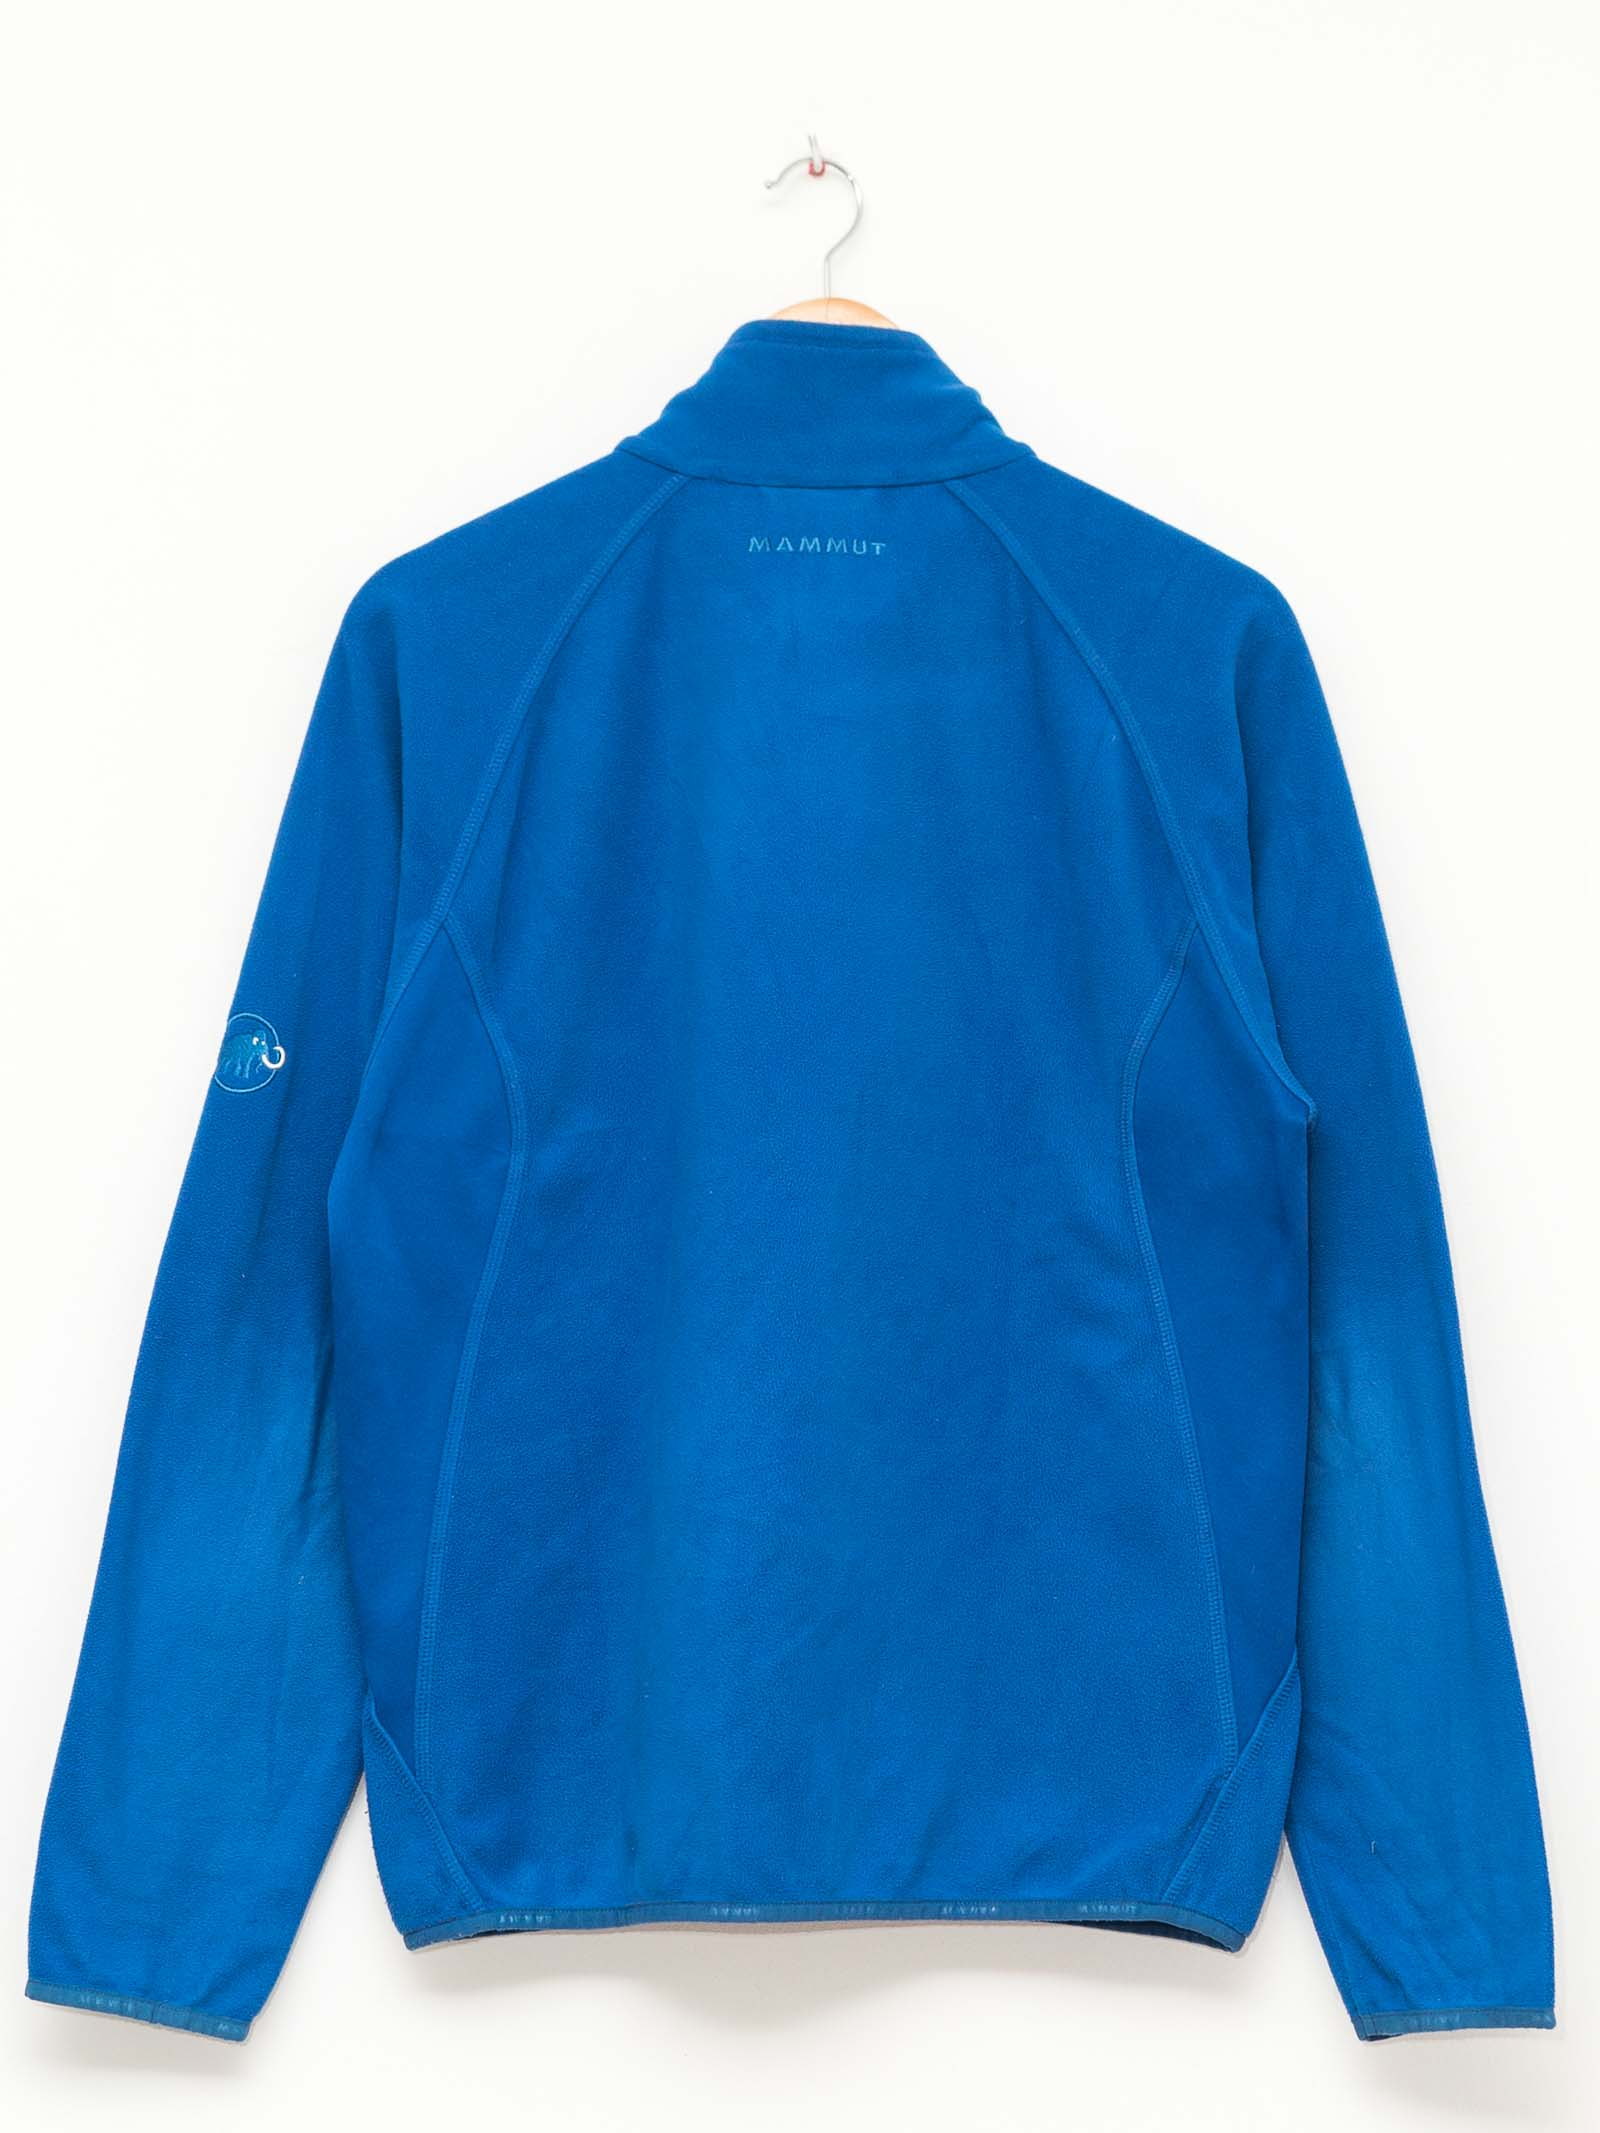 excreament-sportswear-jacket-knitwear-pullover-vintage-shop-fashion-secondhand-clothes (108)